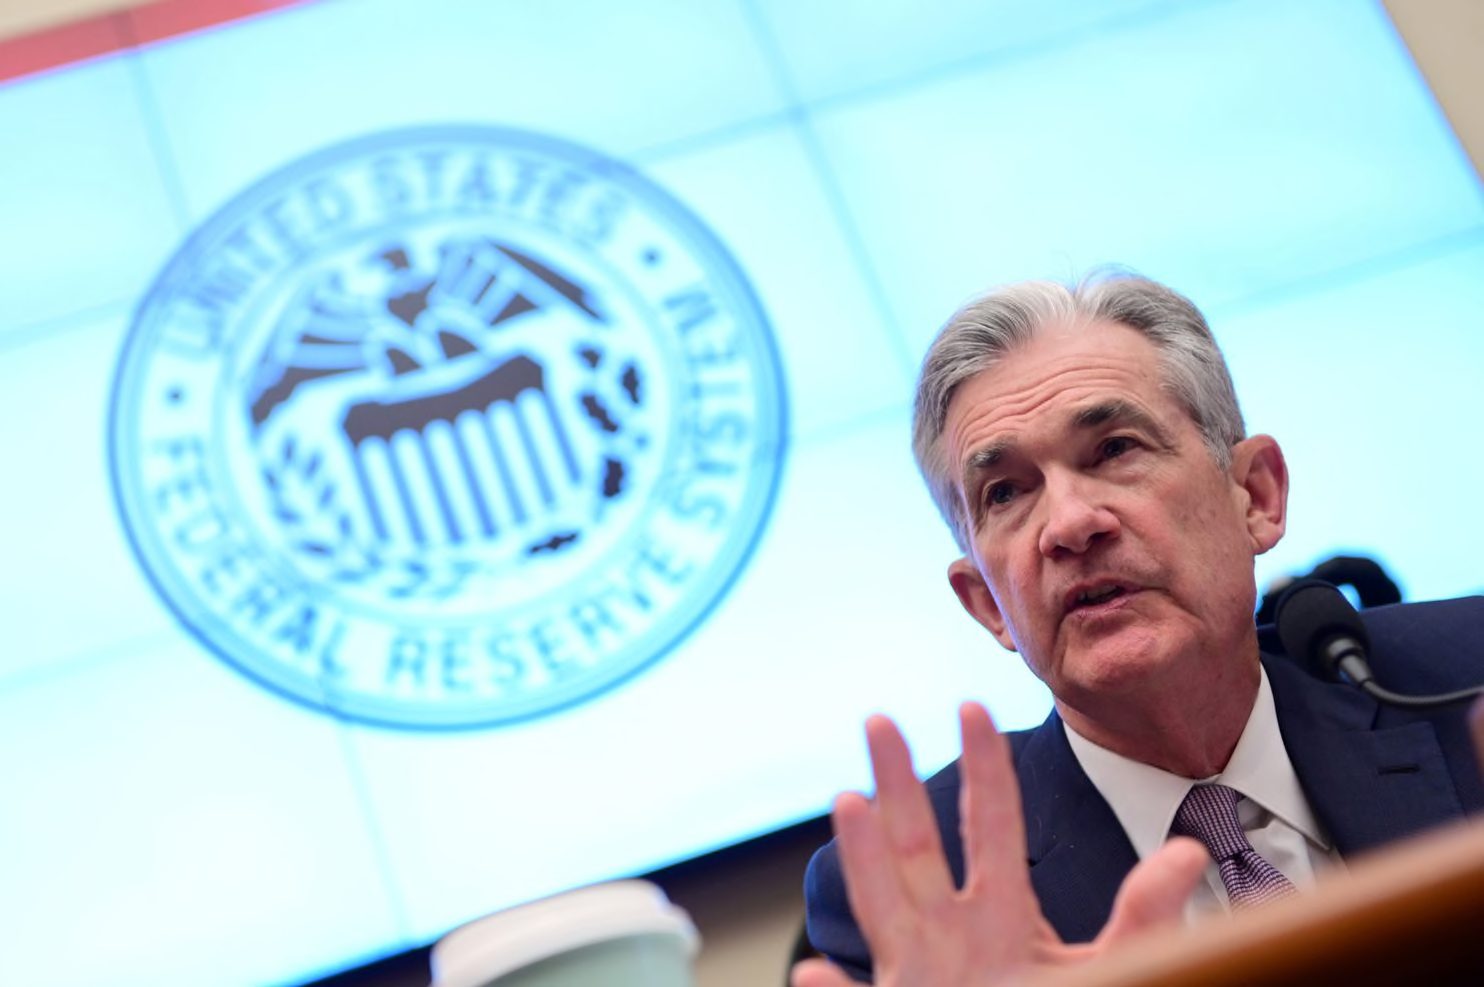 It's the world economy's biggest week of 2019 as Fed prepares to cut